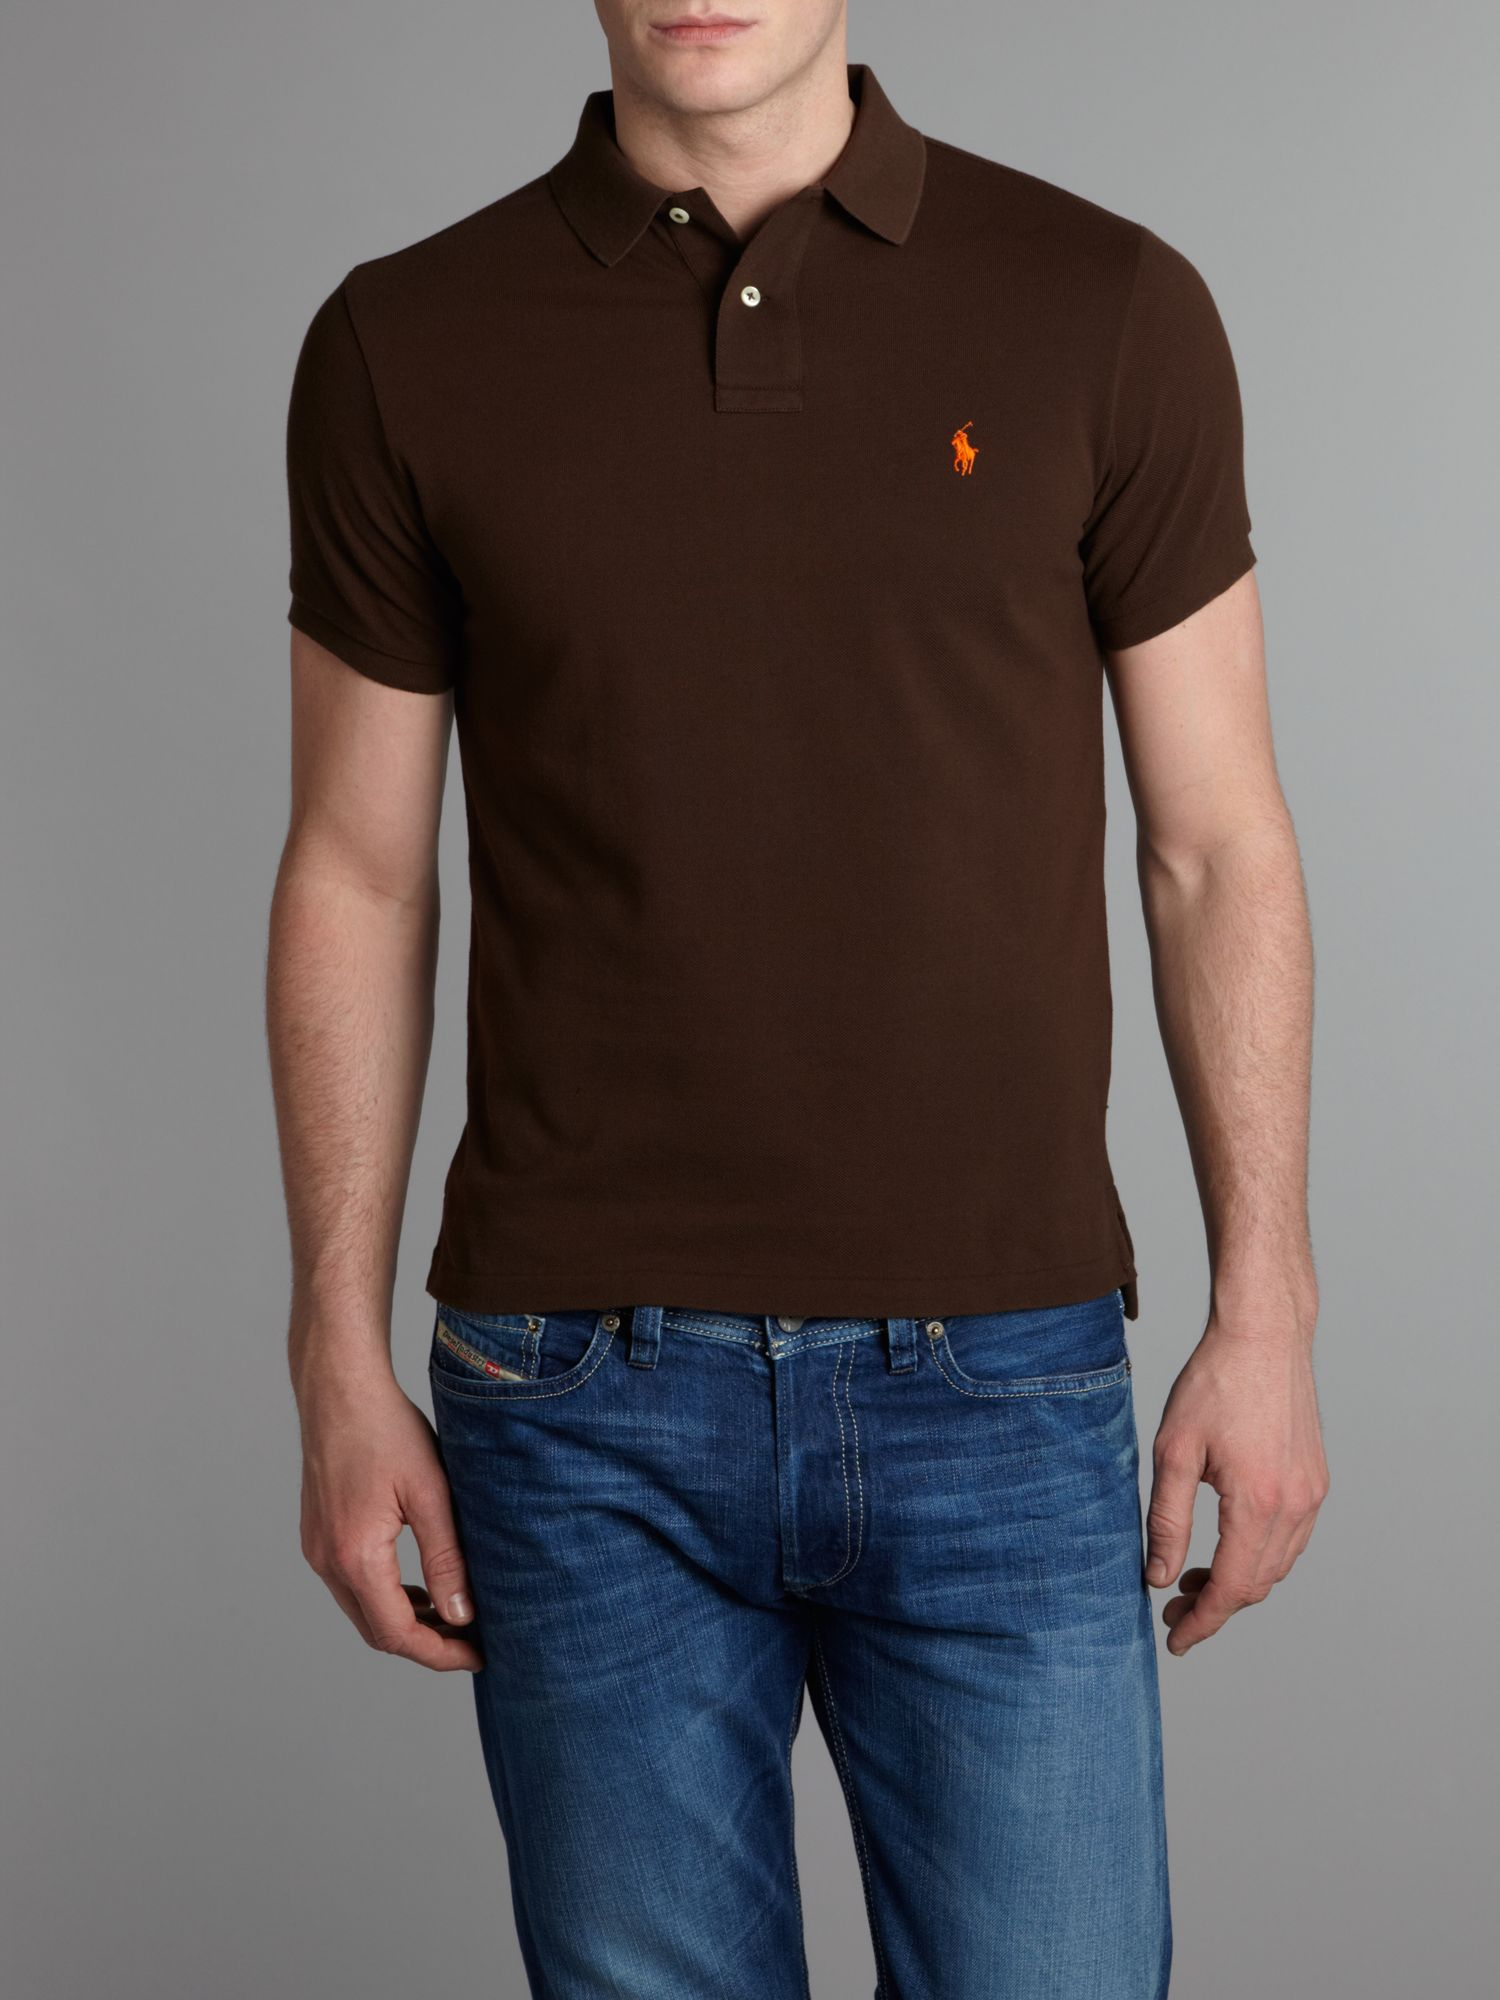 Lyst polo ralph lauren slim fit mesh polo shirt in brown Man in polo shirt